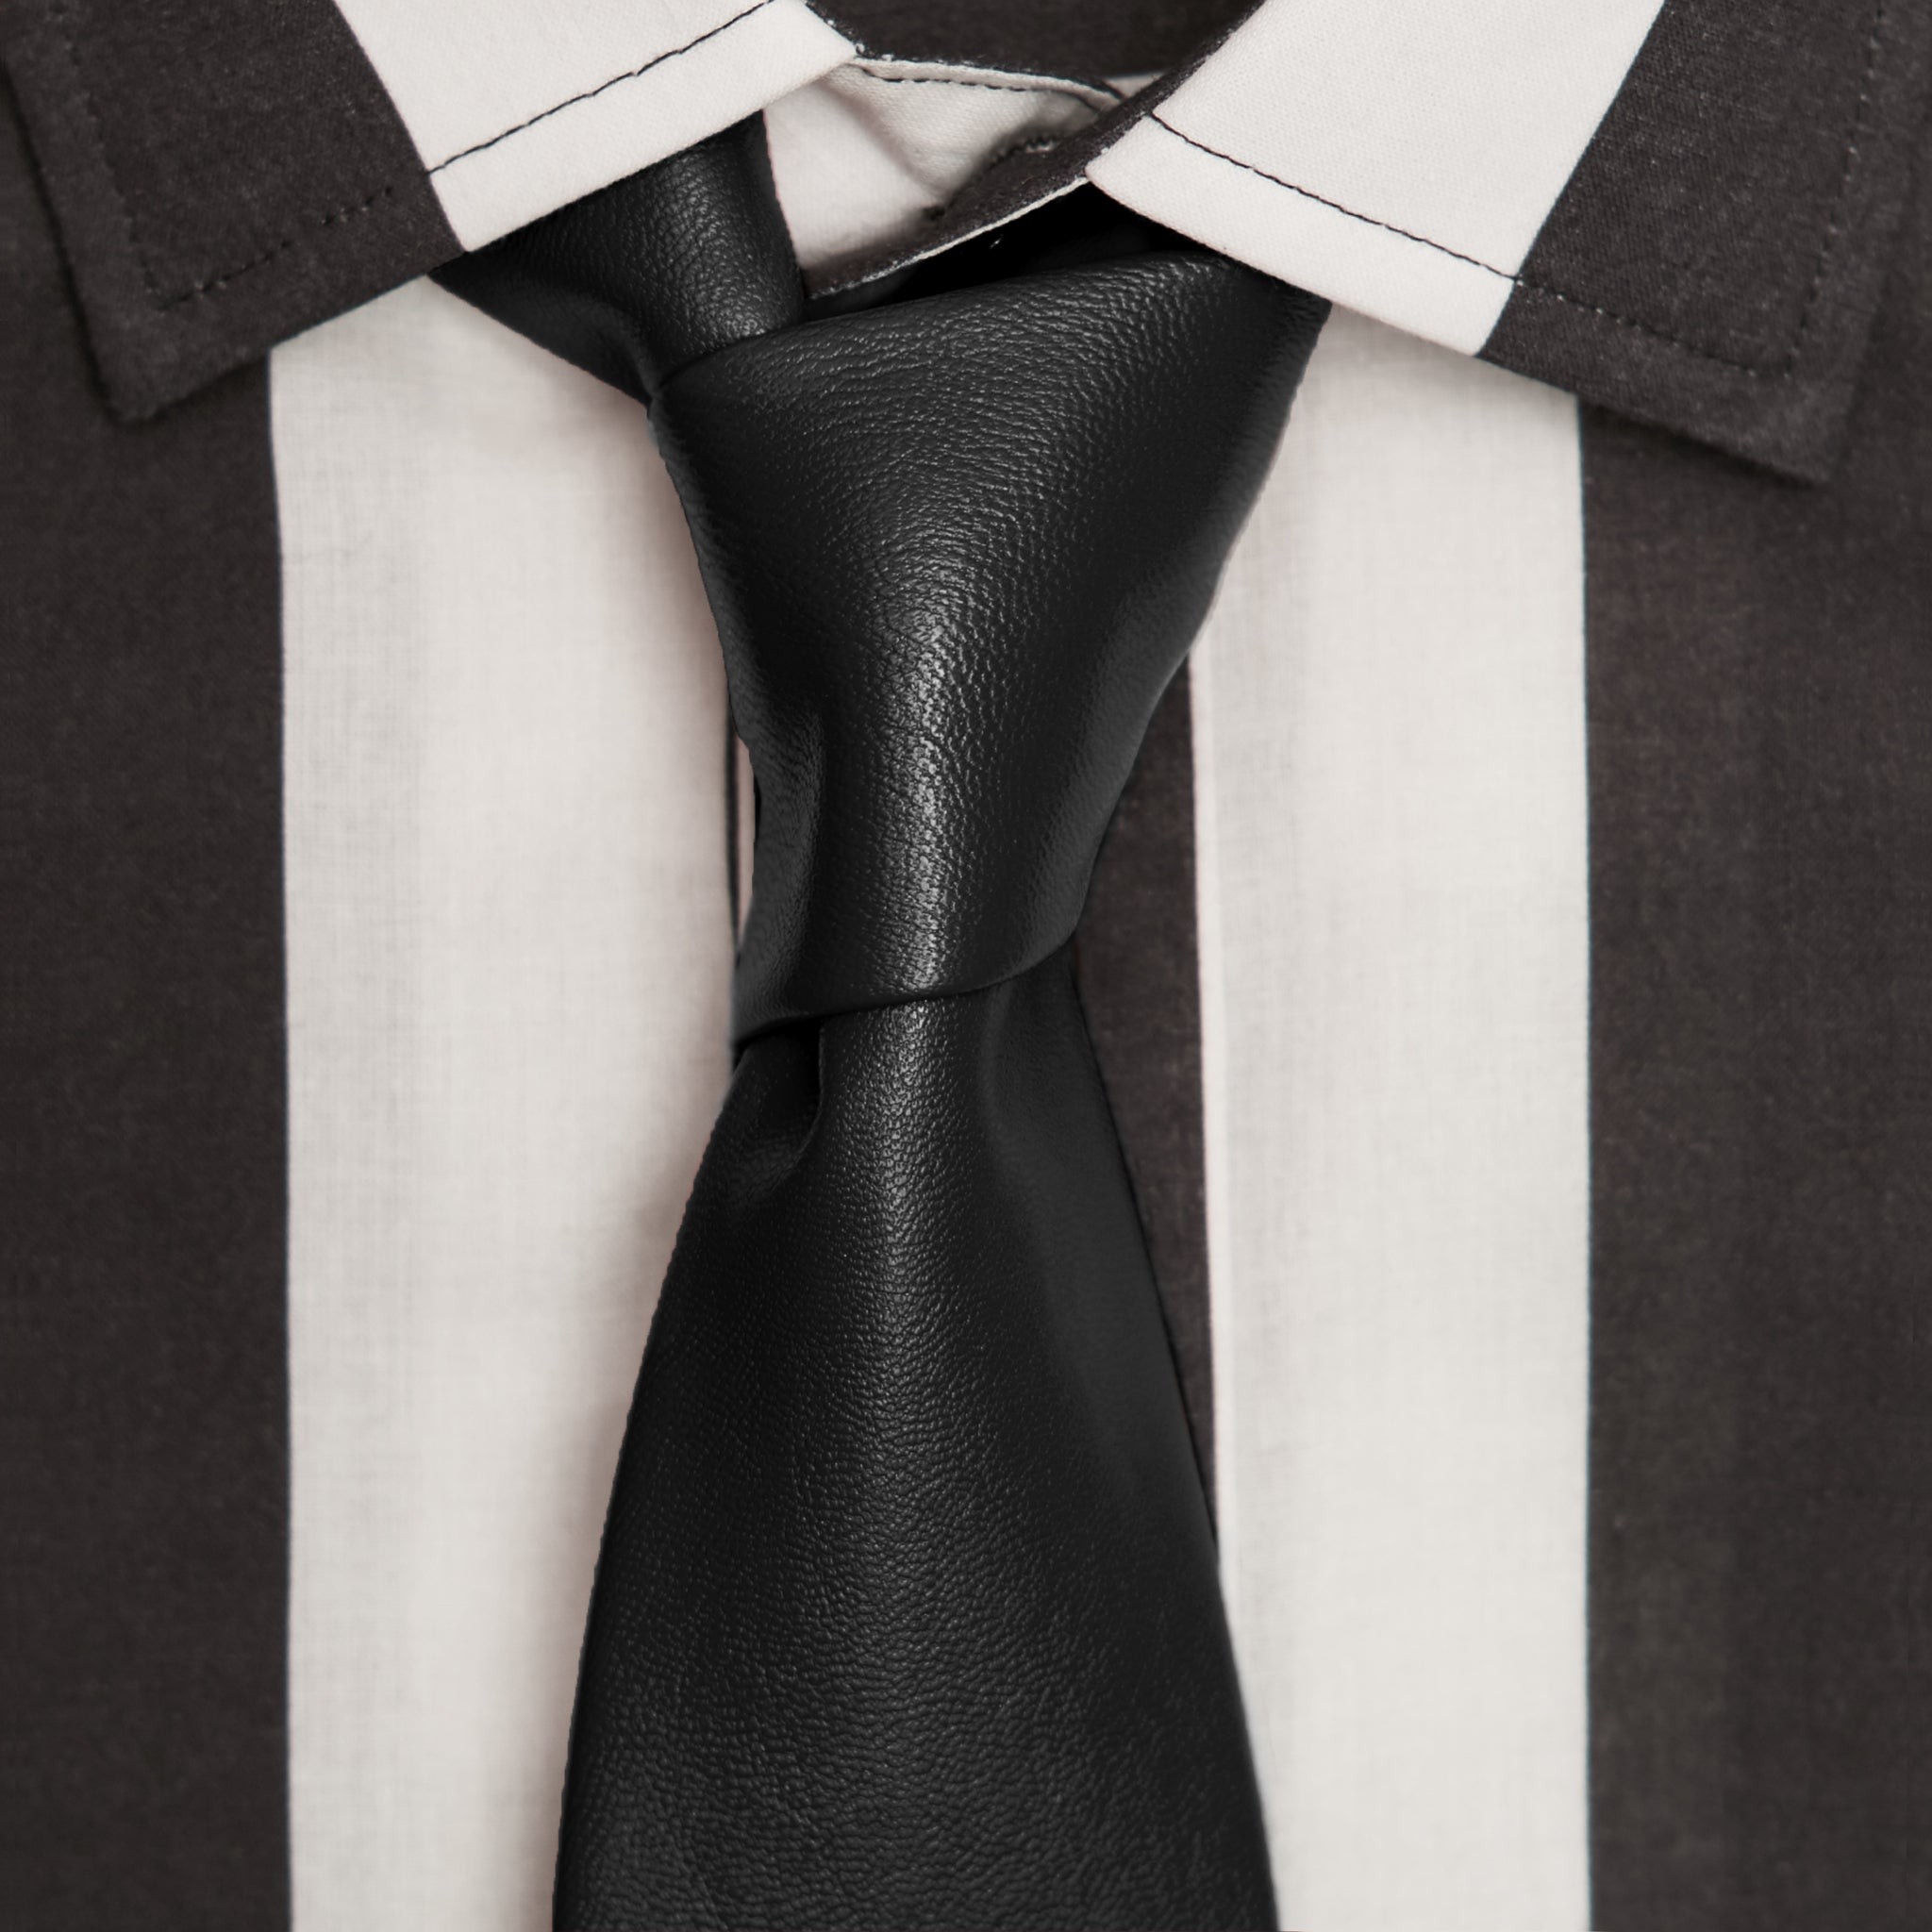 PITCH-BLACK LEATHER TIE